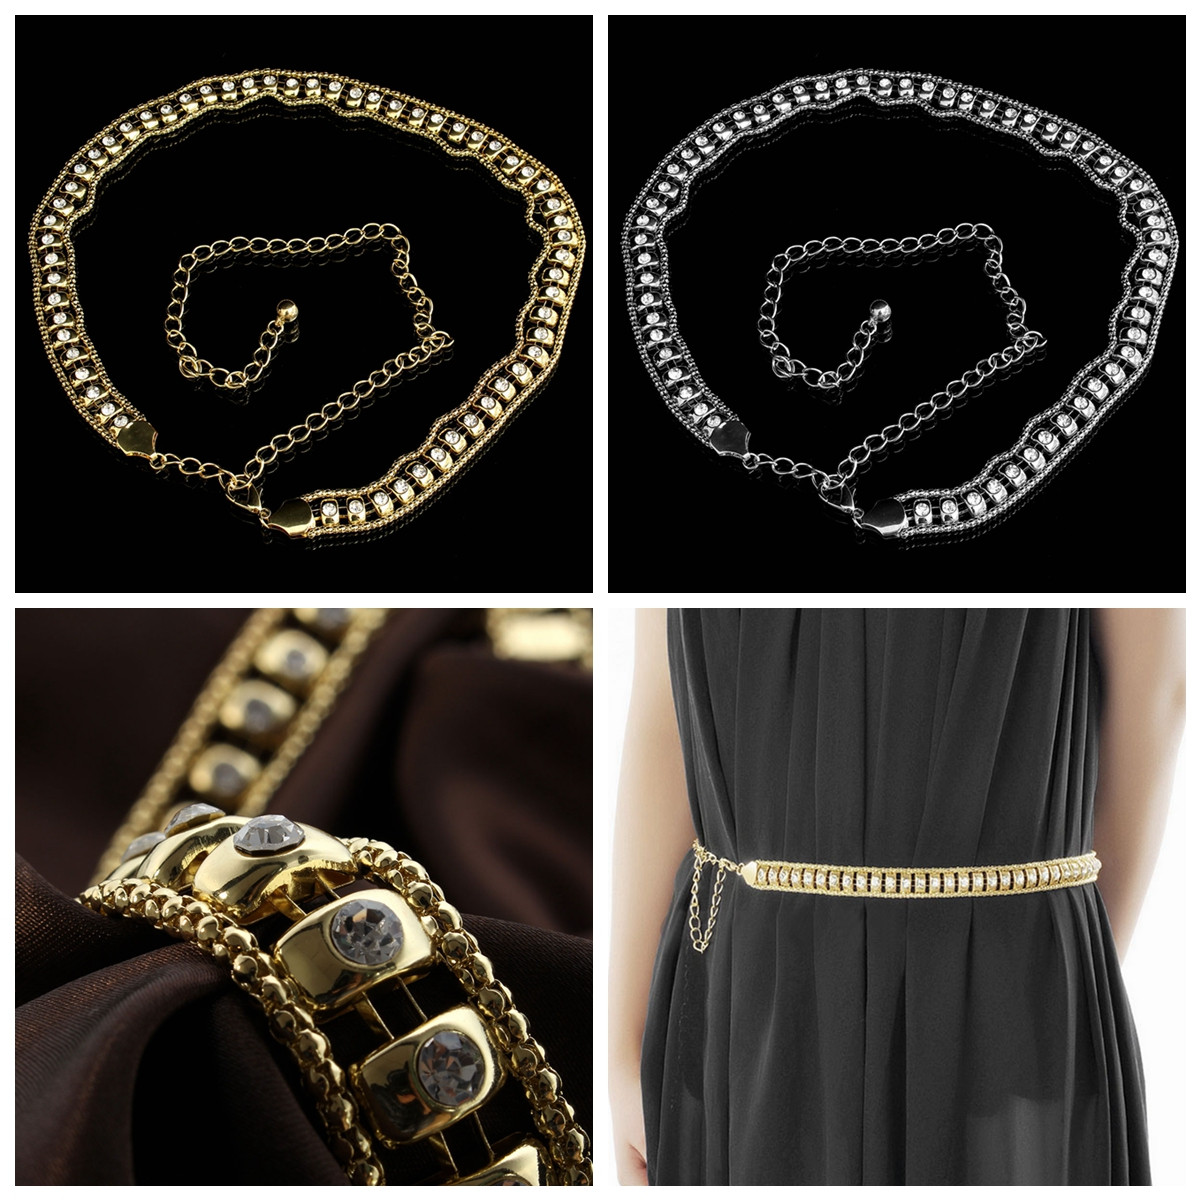 Rhinestone Crystal Shiny Charm Women Belt Waist Chain Body Necklace